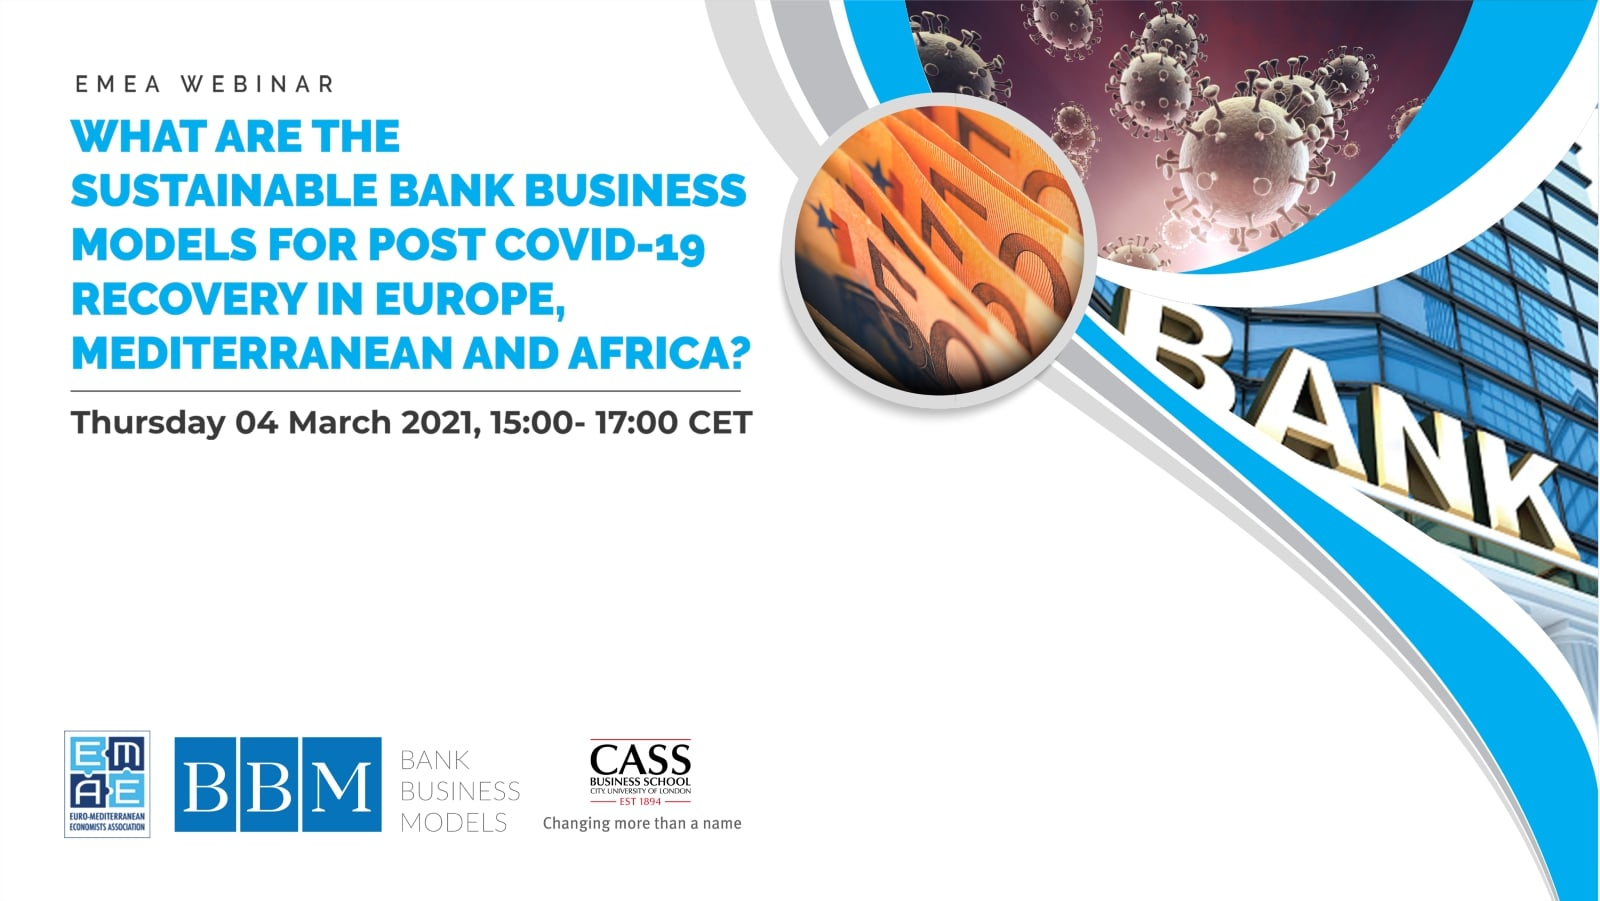 "EMEA announces the webinar ""What are the sustainable bank business models for post COVID-19 recovery in Europe, Mediterranean and Africa?"" scheduled on Thursday 04 March 2021, 15:00 CET"